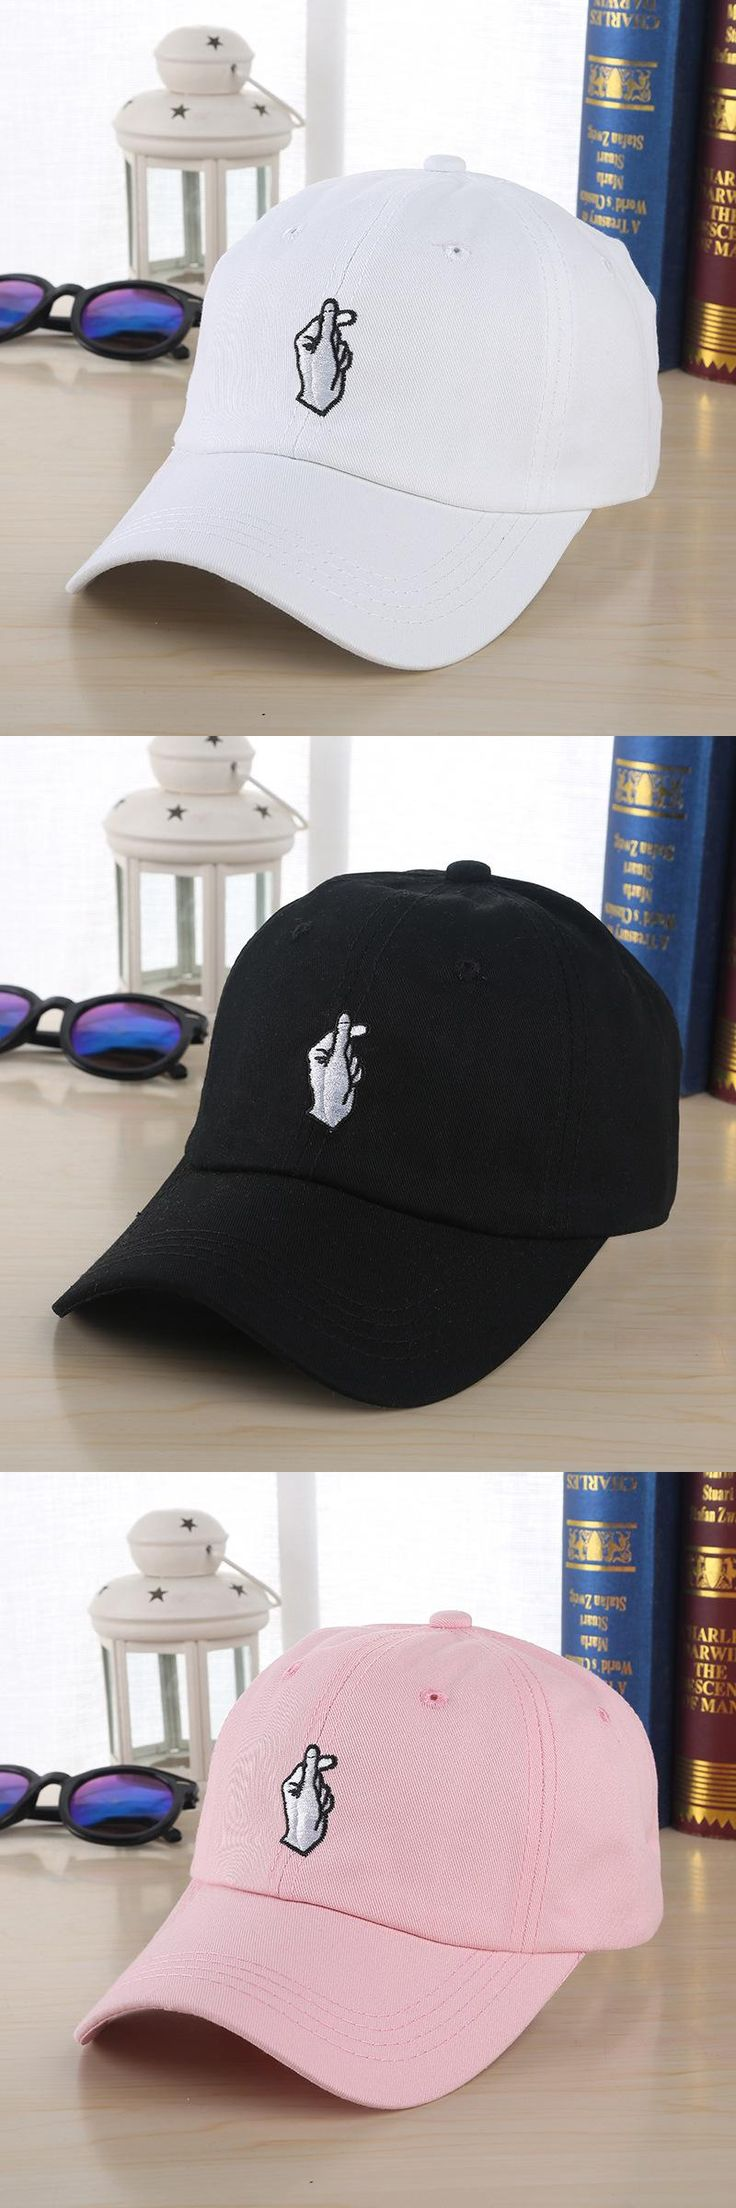 Embroidered Curved Brim Low Profile Baseball Polo Cap Hat  2017 girls golf sport baseball caps polo hats for women men style